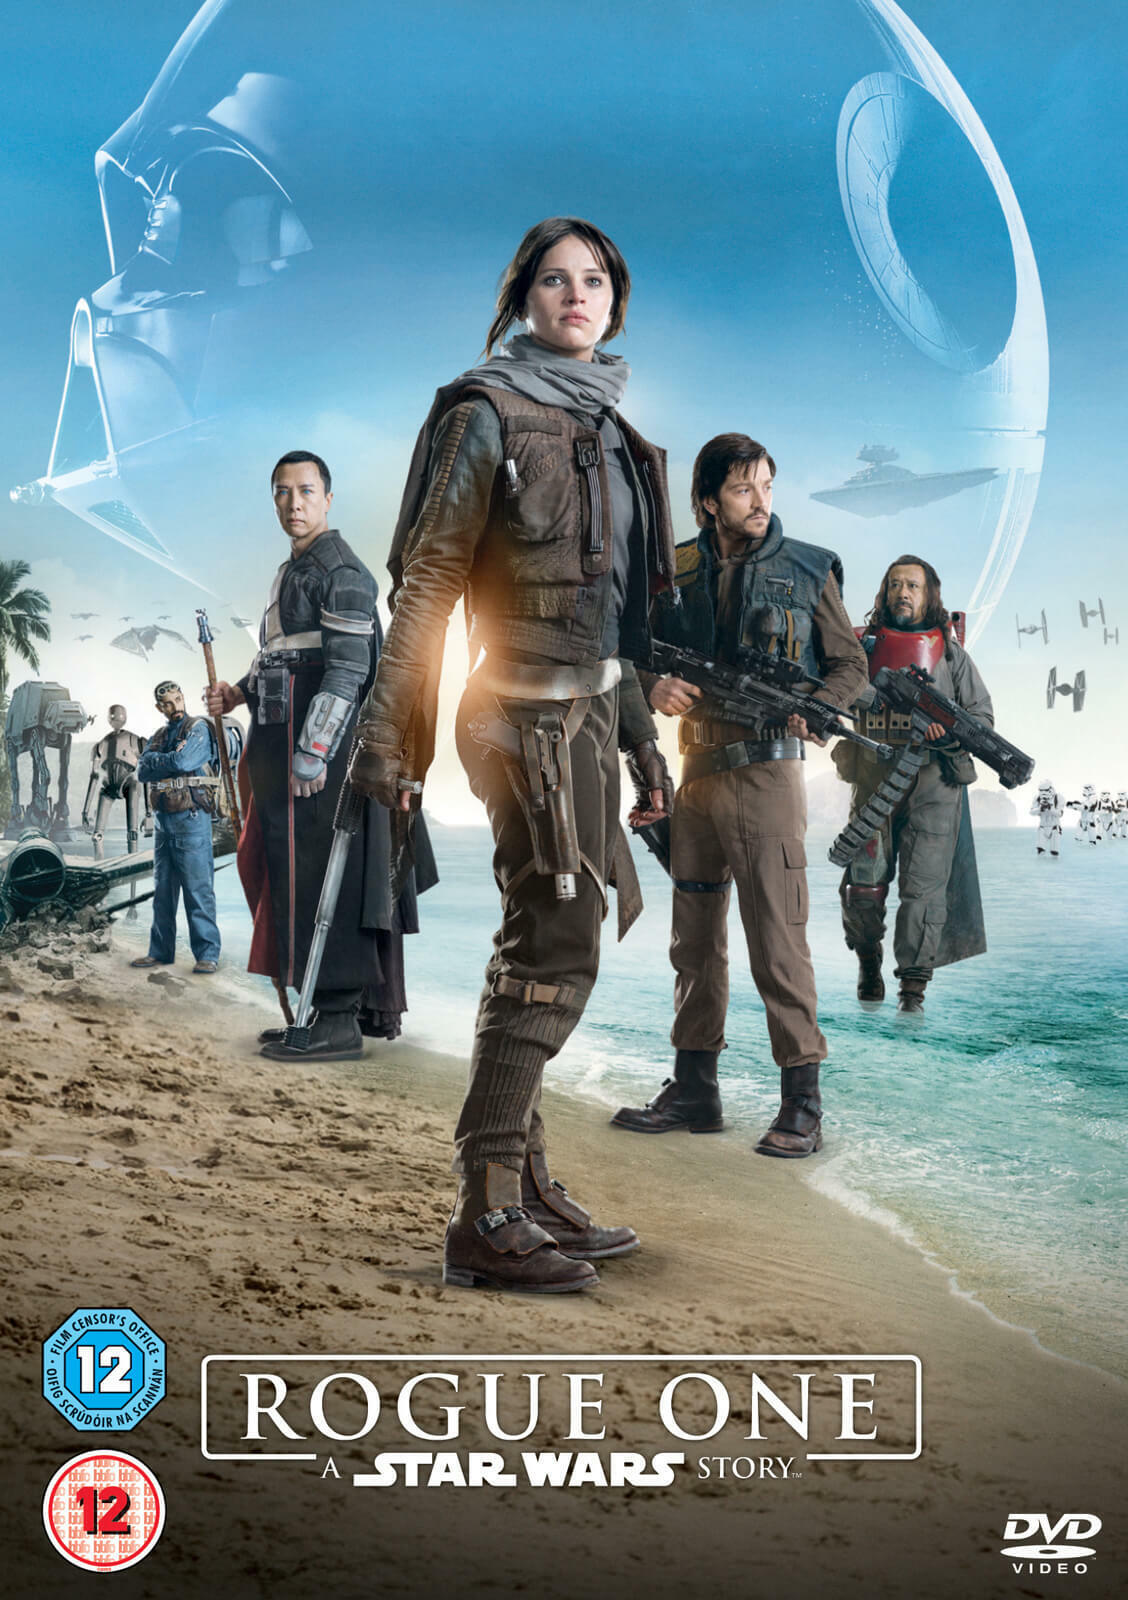 Rogue One A Star Wars Story 2016 Dvd For Sale Online Ebay